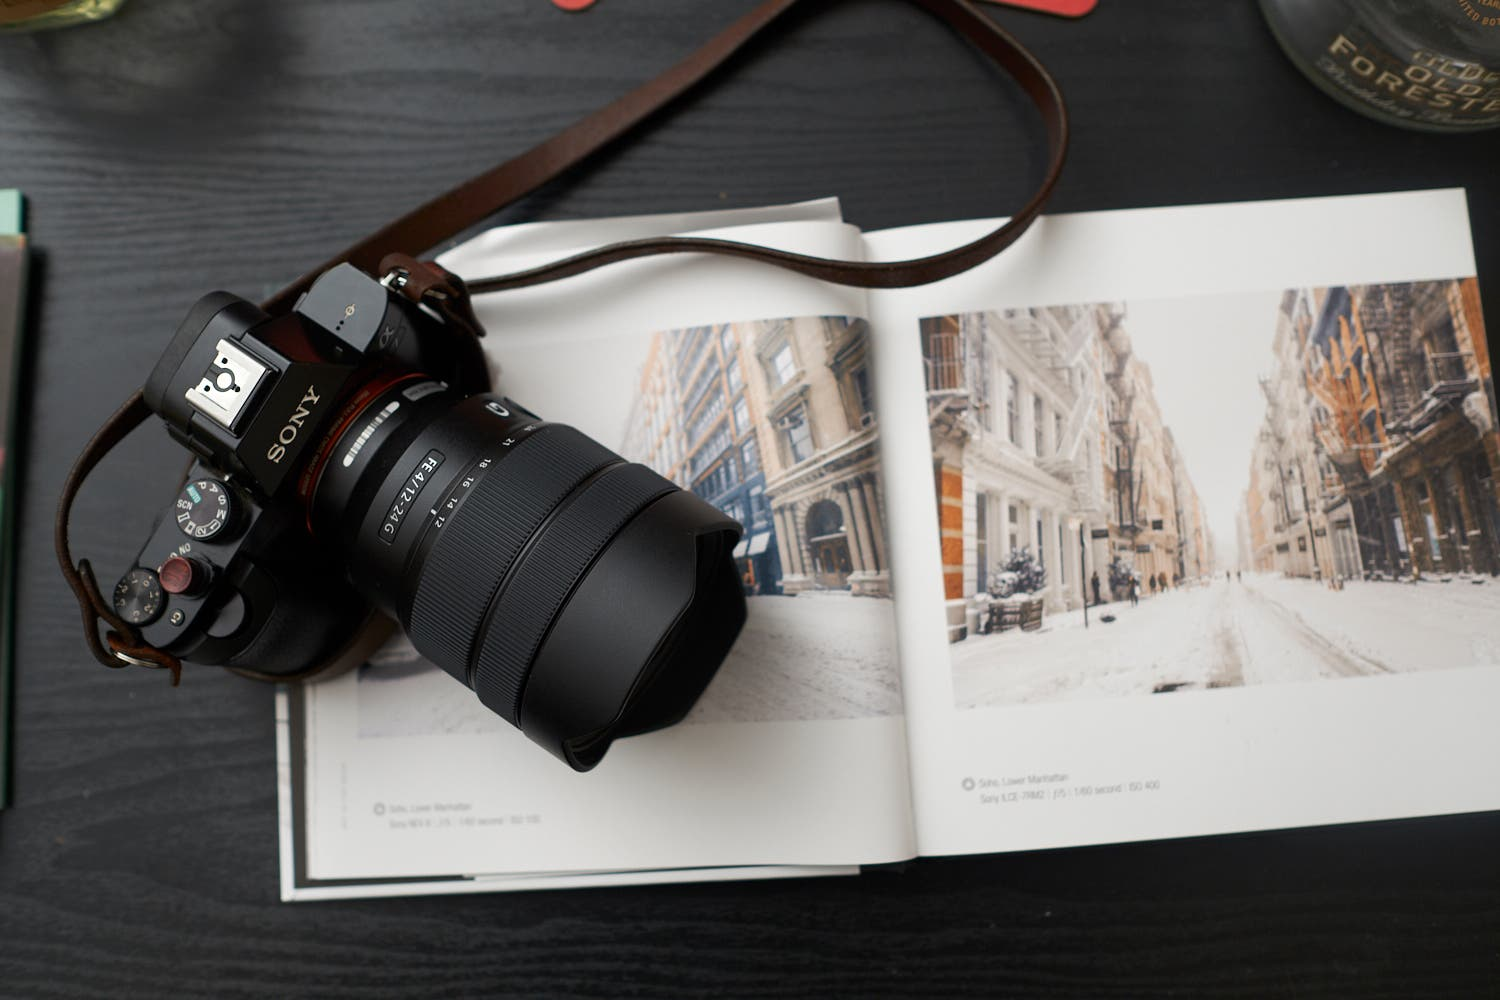 10 of the Best Sony E-Mount Ultra-Wide Lenses for Land and Cityscapes